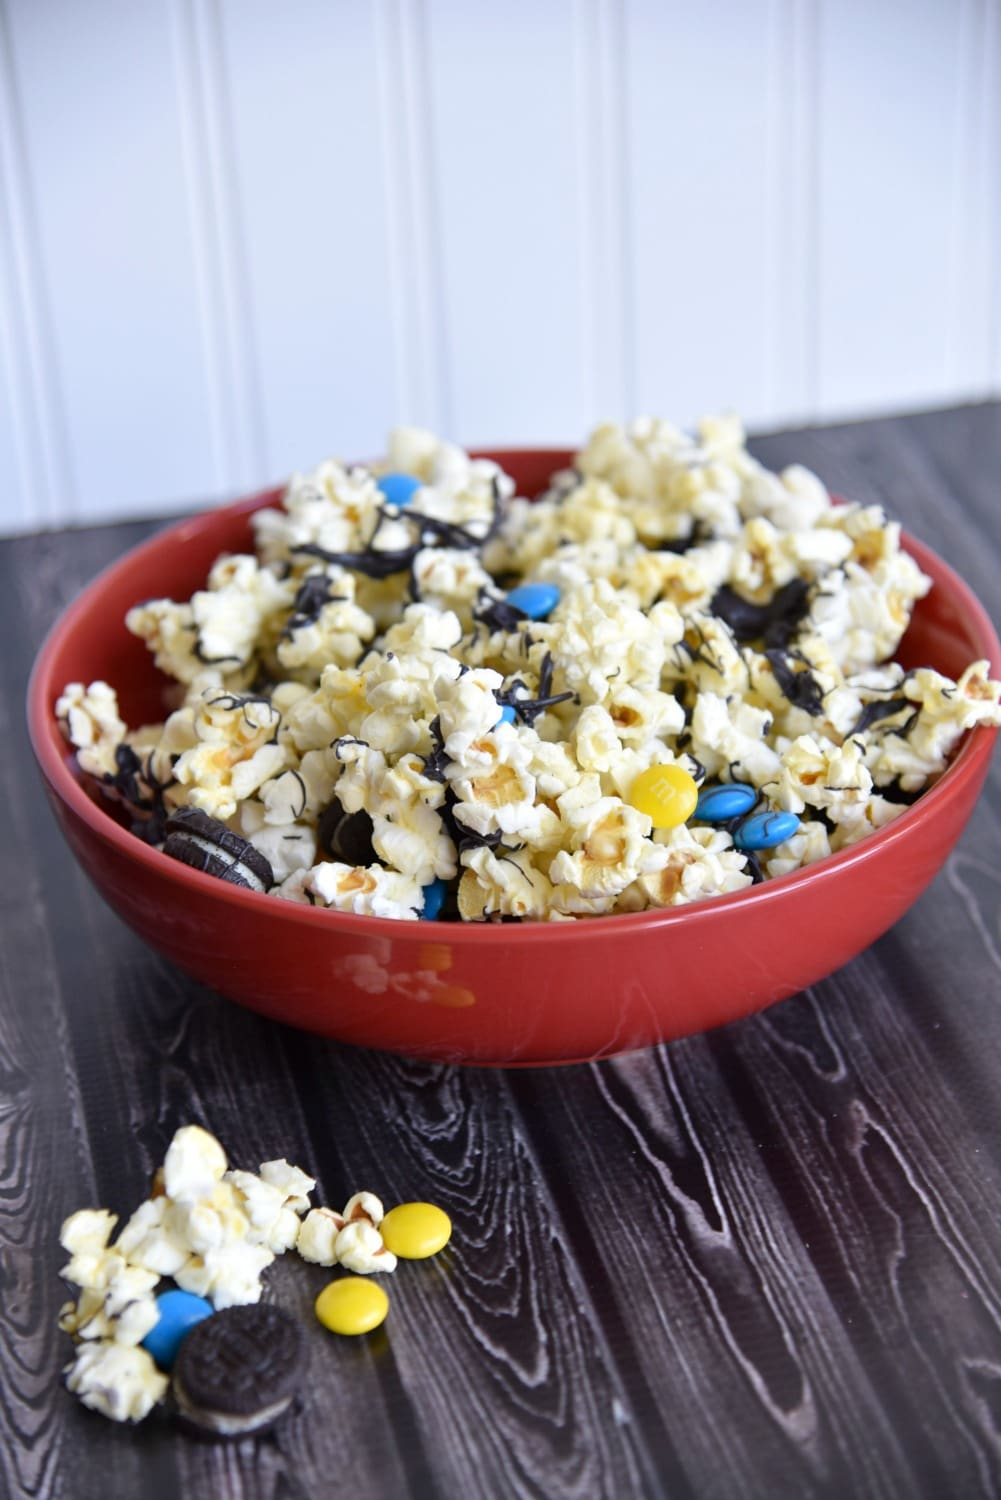 Batman themed popcorn